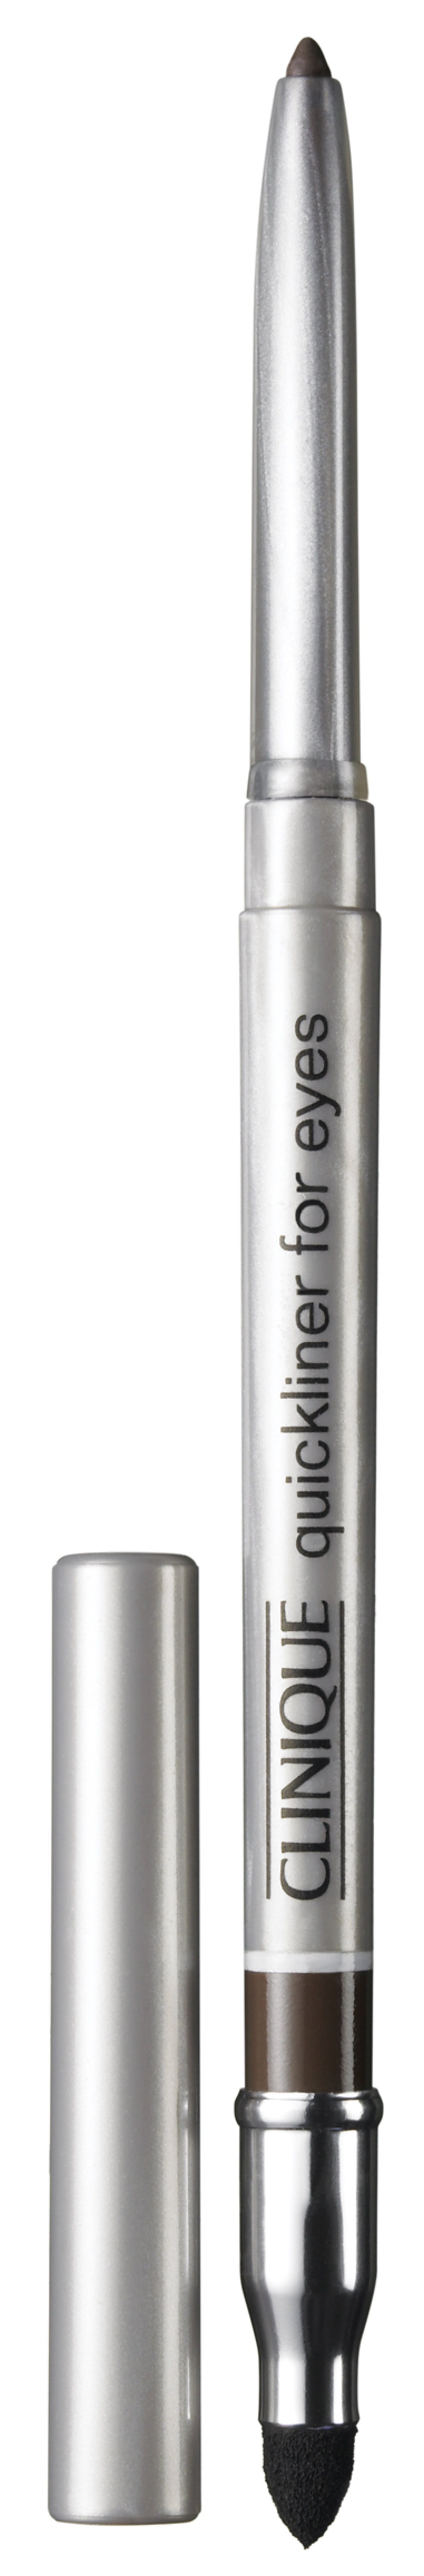 Clinique Quickliner For Eyes, smoky brown